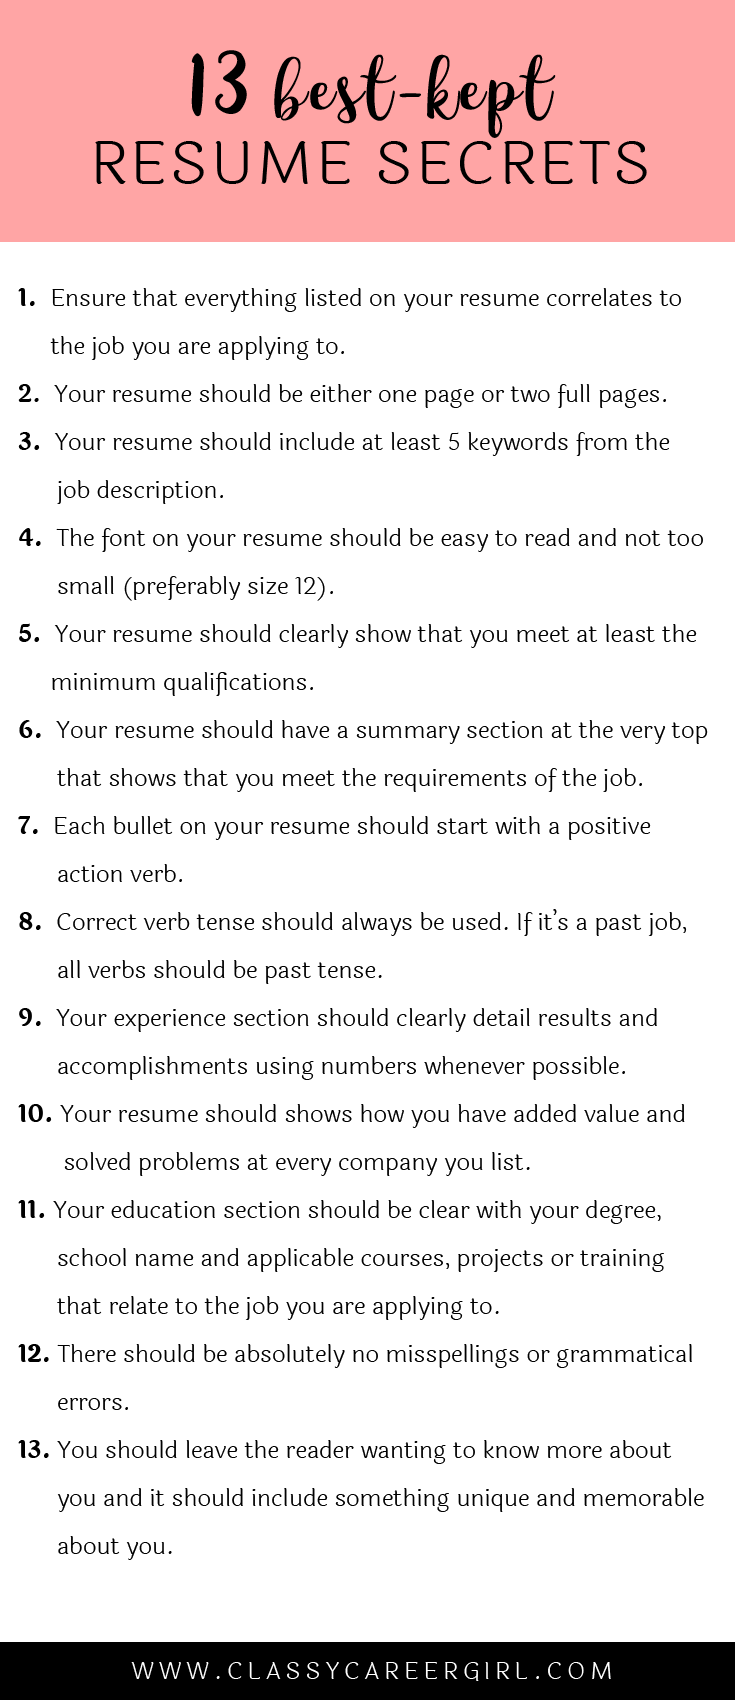 The 13 Best-Kept Resume Secrets | Currículum, Consejos y Carrera